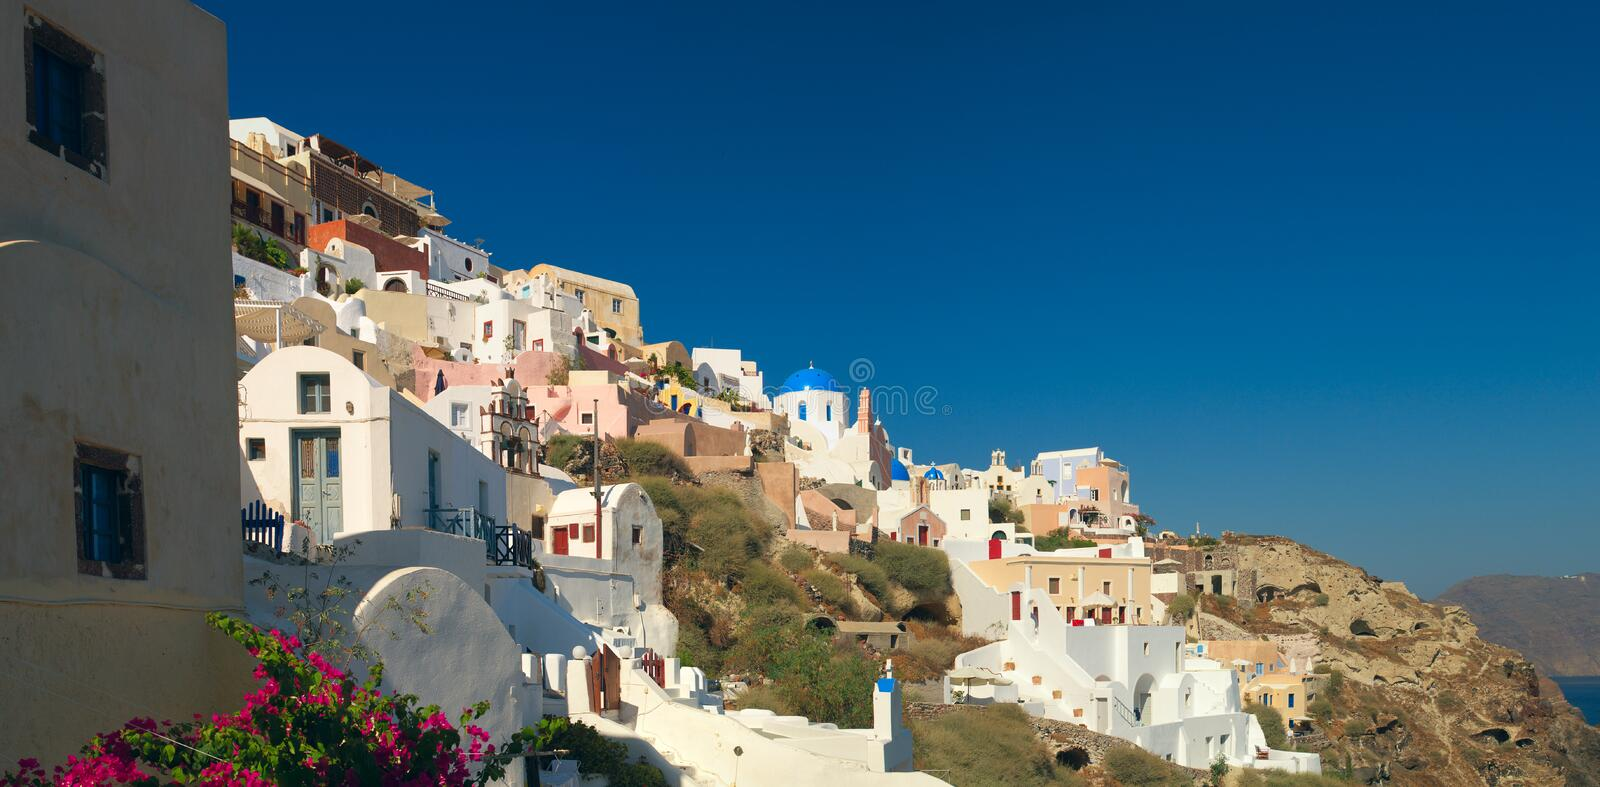 Download Santorini Oia town stock image. Image of city, hill, greece - 23772857